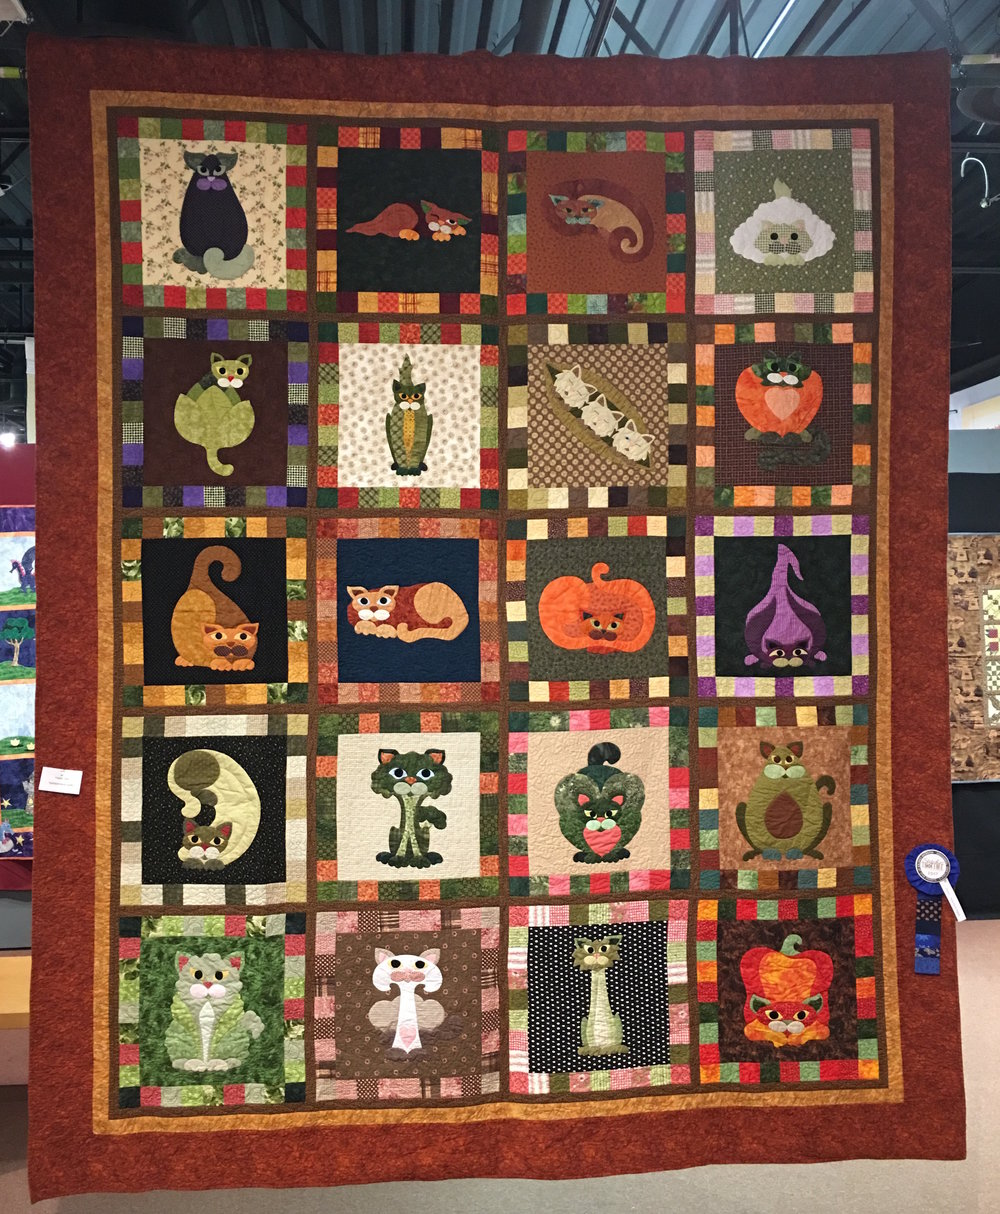 1st Place Applique Hand & Ruth Hale Viewer's Choice Winner: Veggie Cats entered by Dawn Ward